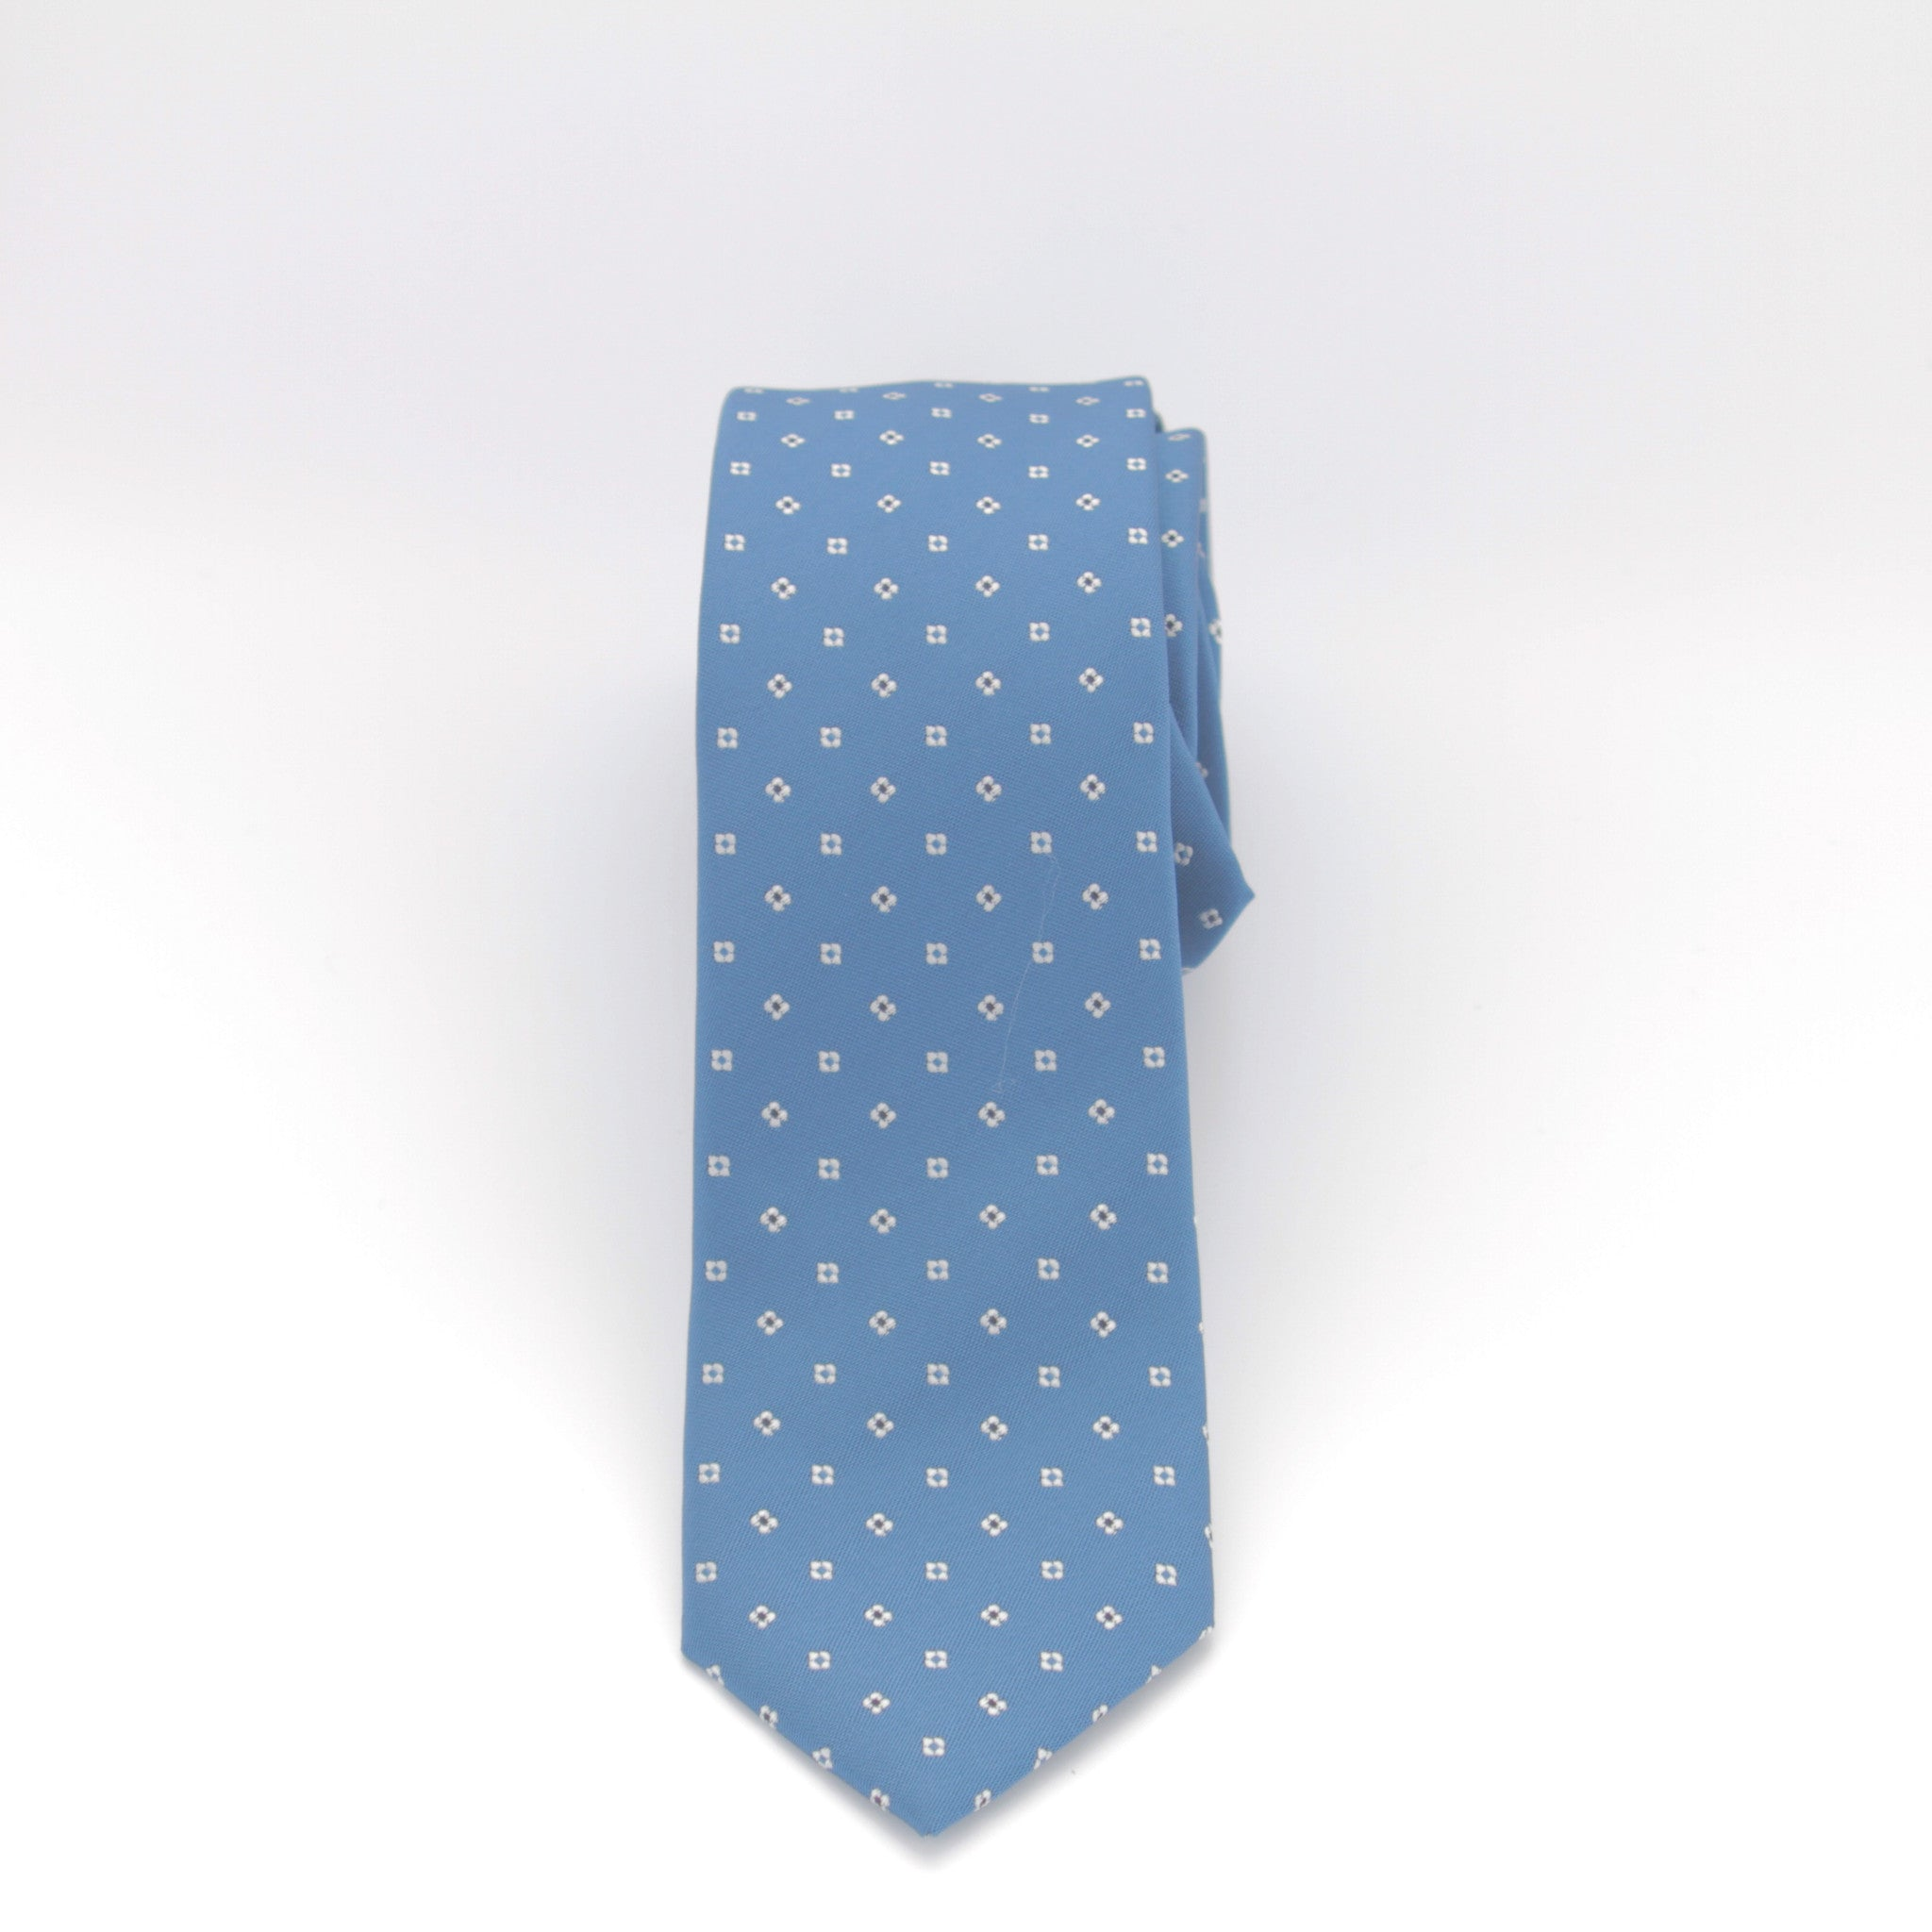 Teal Long Tie with White Dots